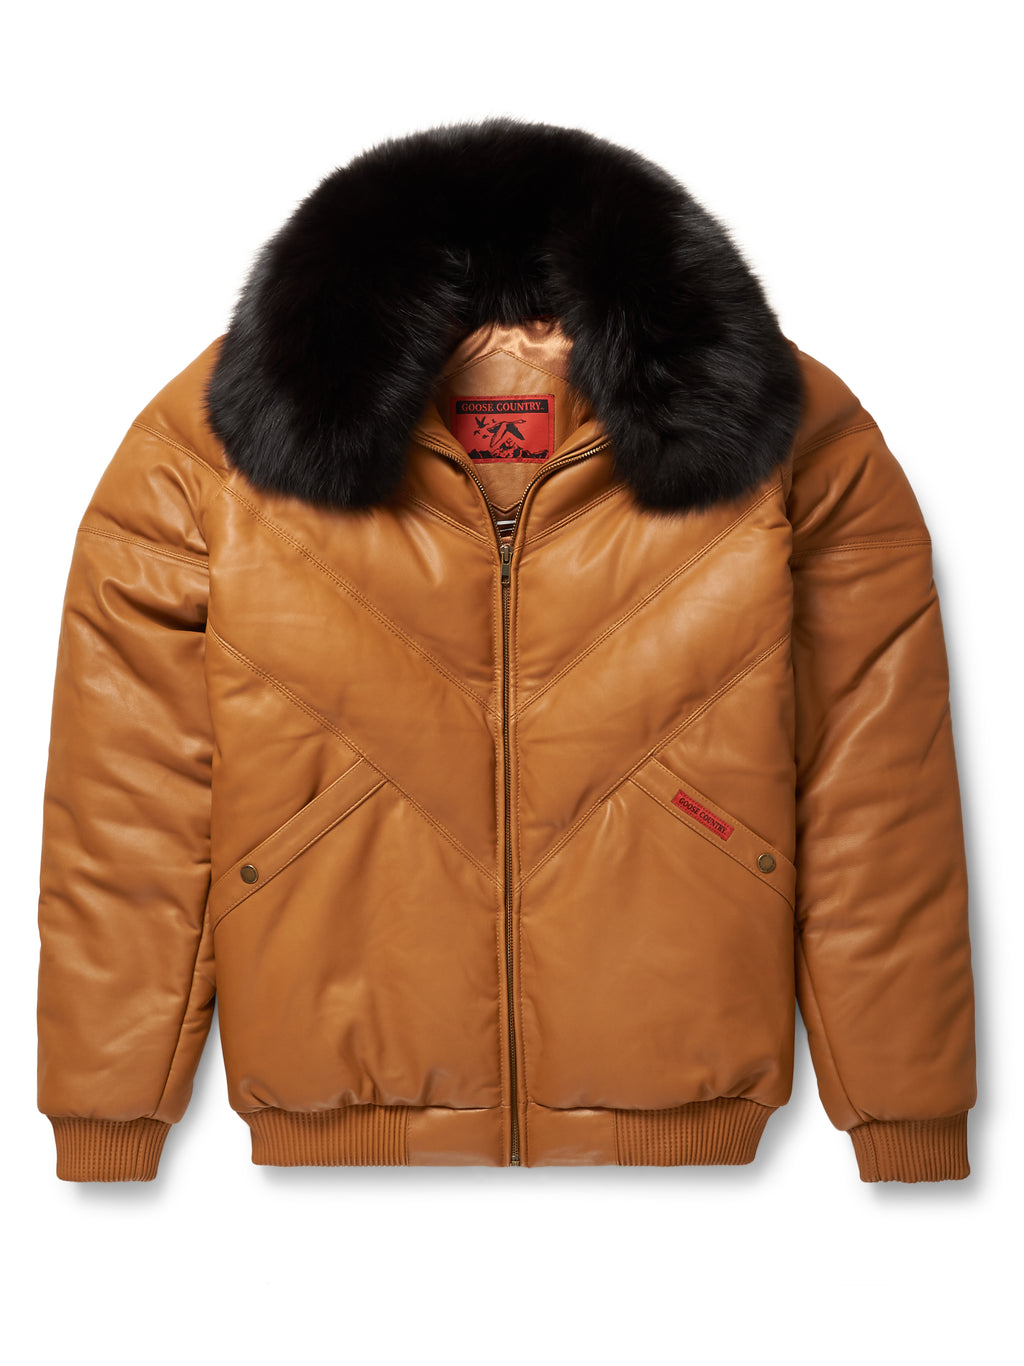 Goose Country V-Bomber: Camel Leather